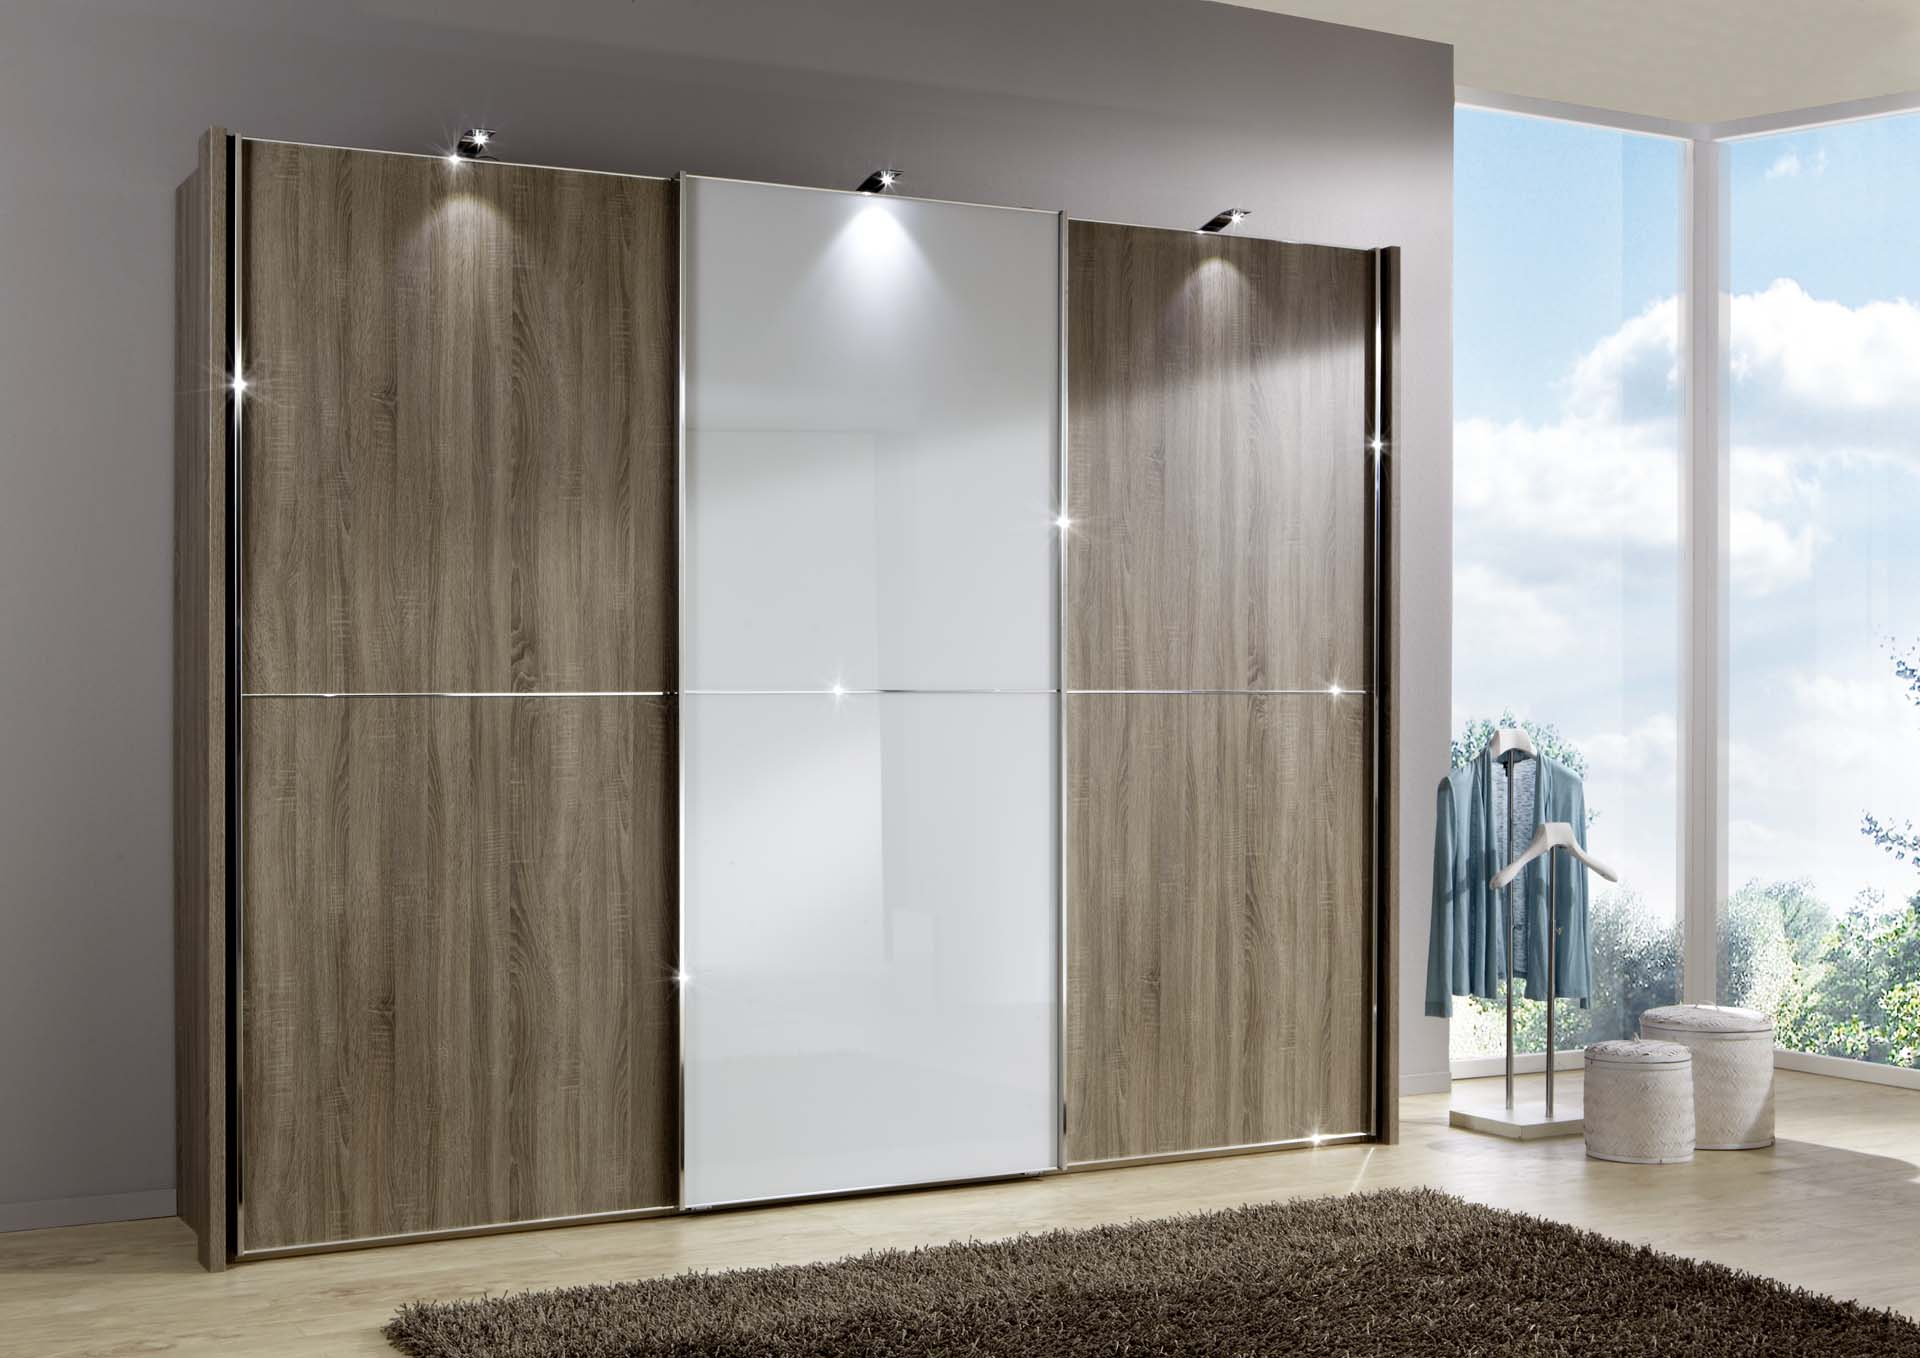 Wiemann Miami 2 Wardrobe Dark Rustic Oak With White Glass